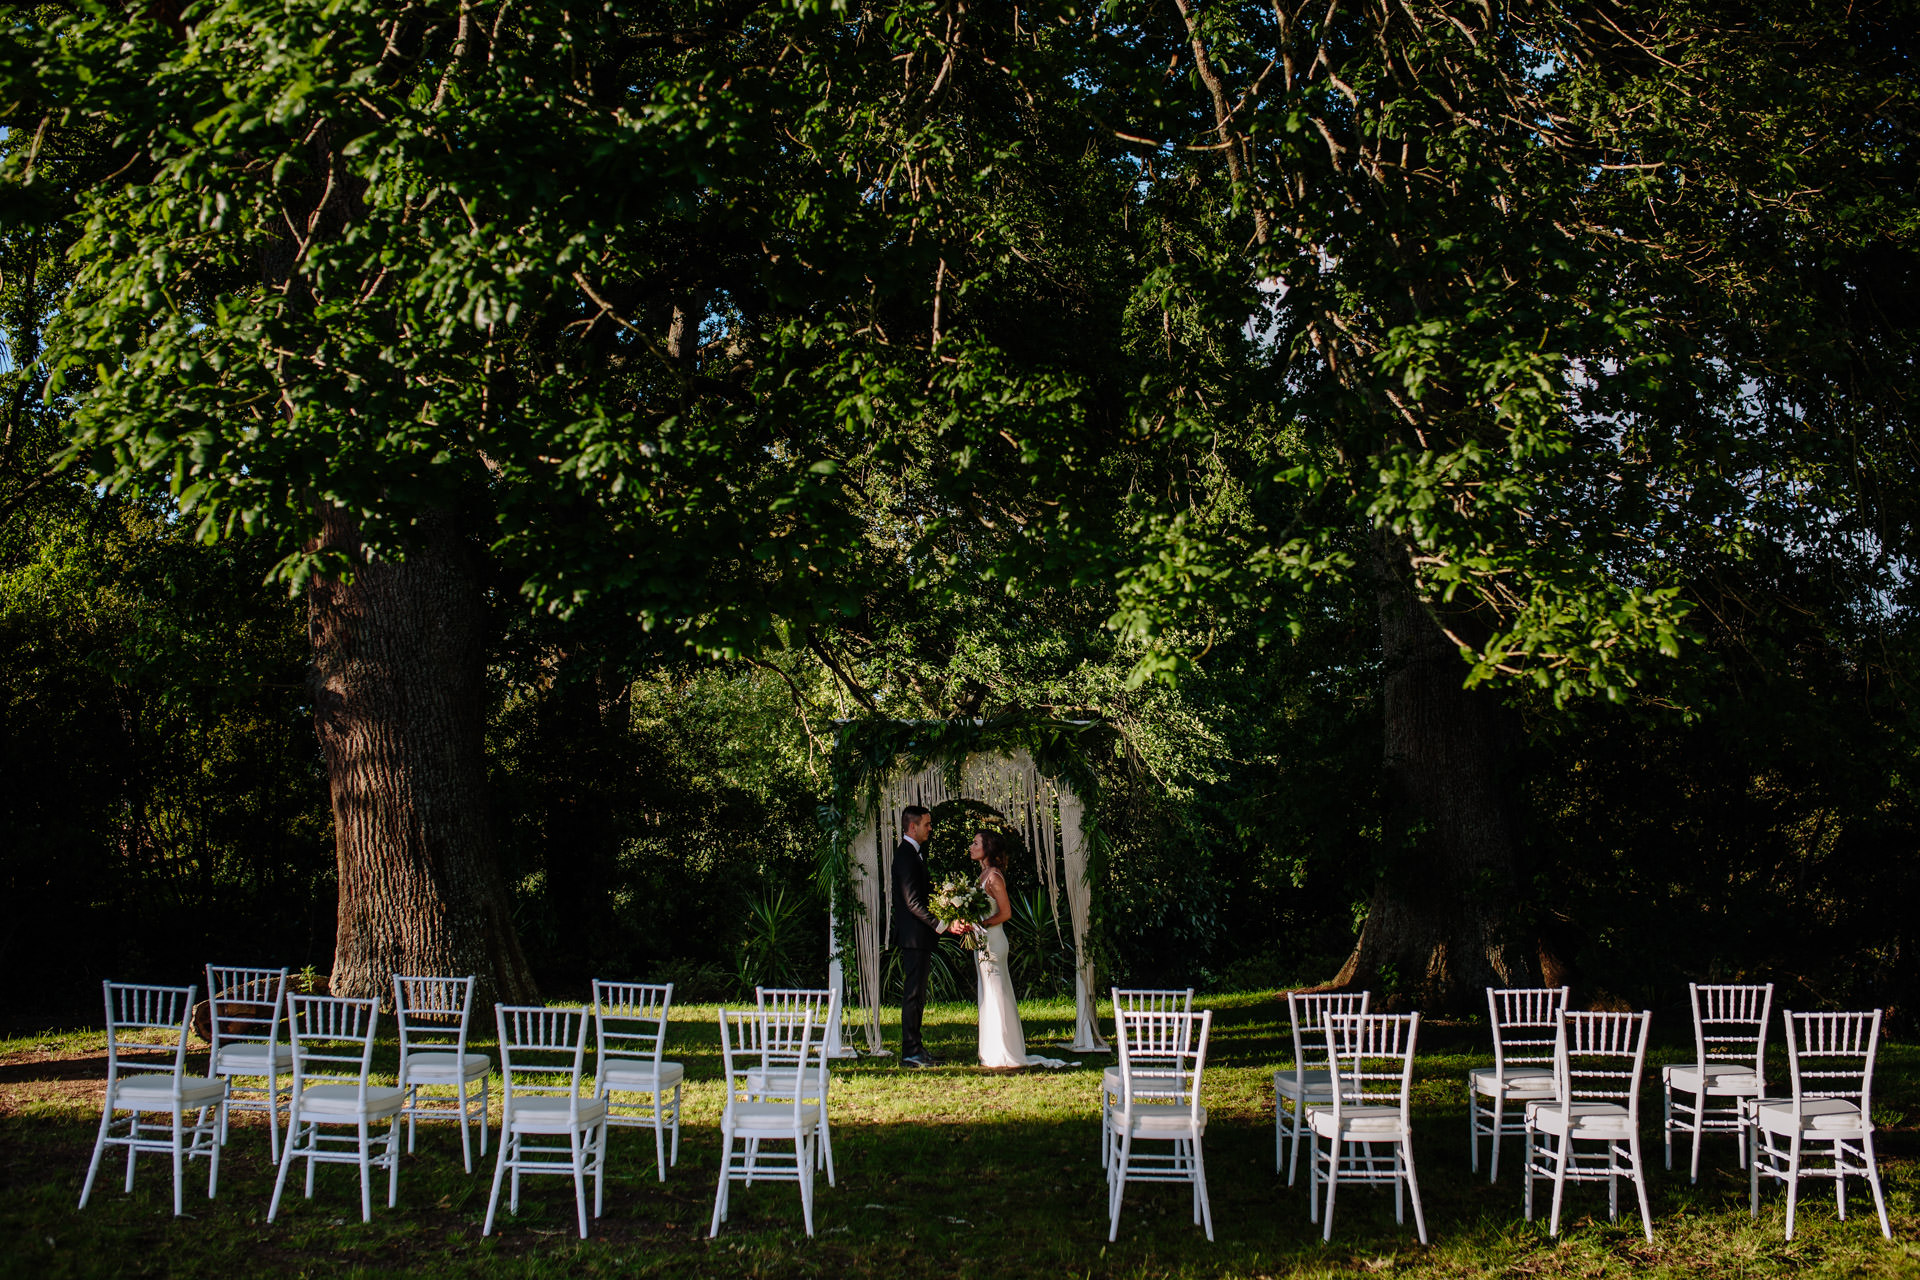 1_top_4511_the_official_photographers_wedding_styled_newzealand